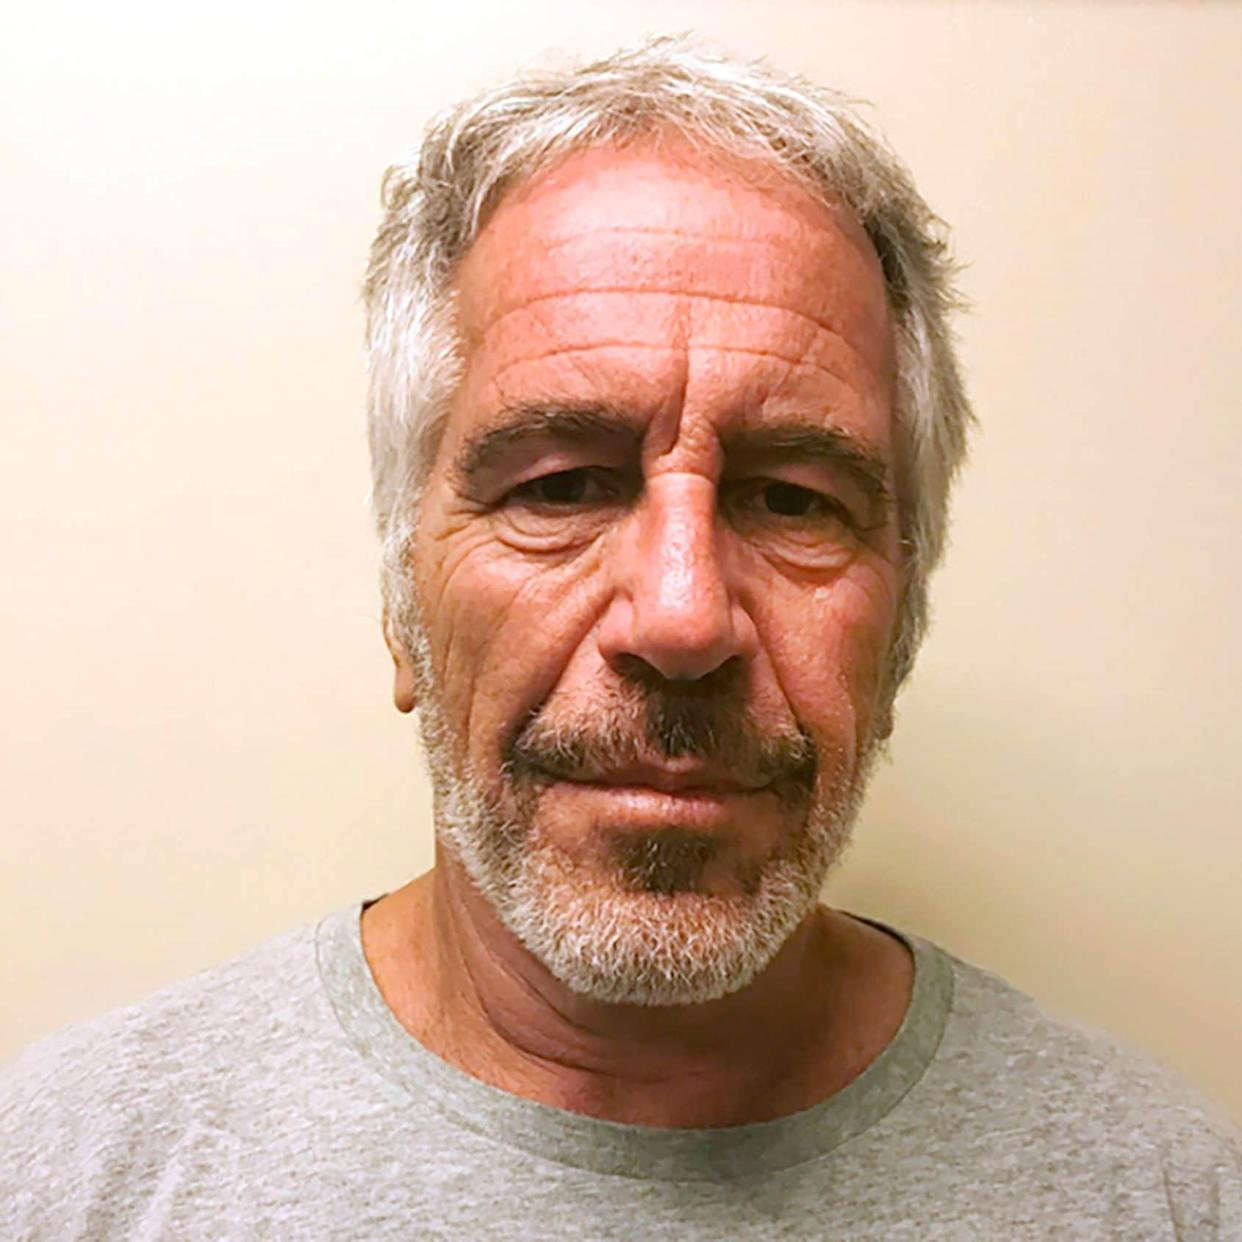 The source of Jeffrey Epstein's wealth his now under investigation. He took his own life in jail on Aug 10 - New York State Sex Offender Registry